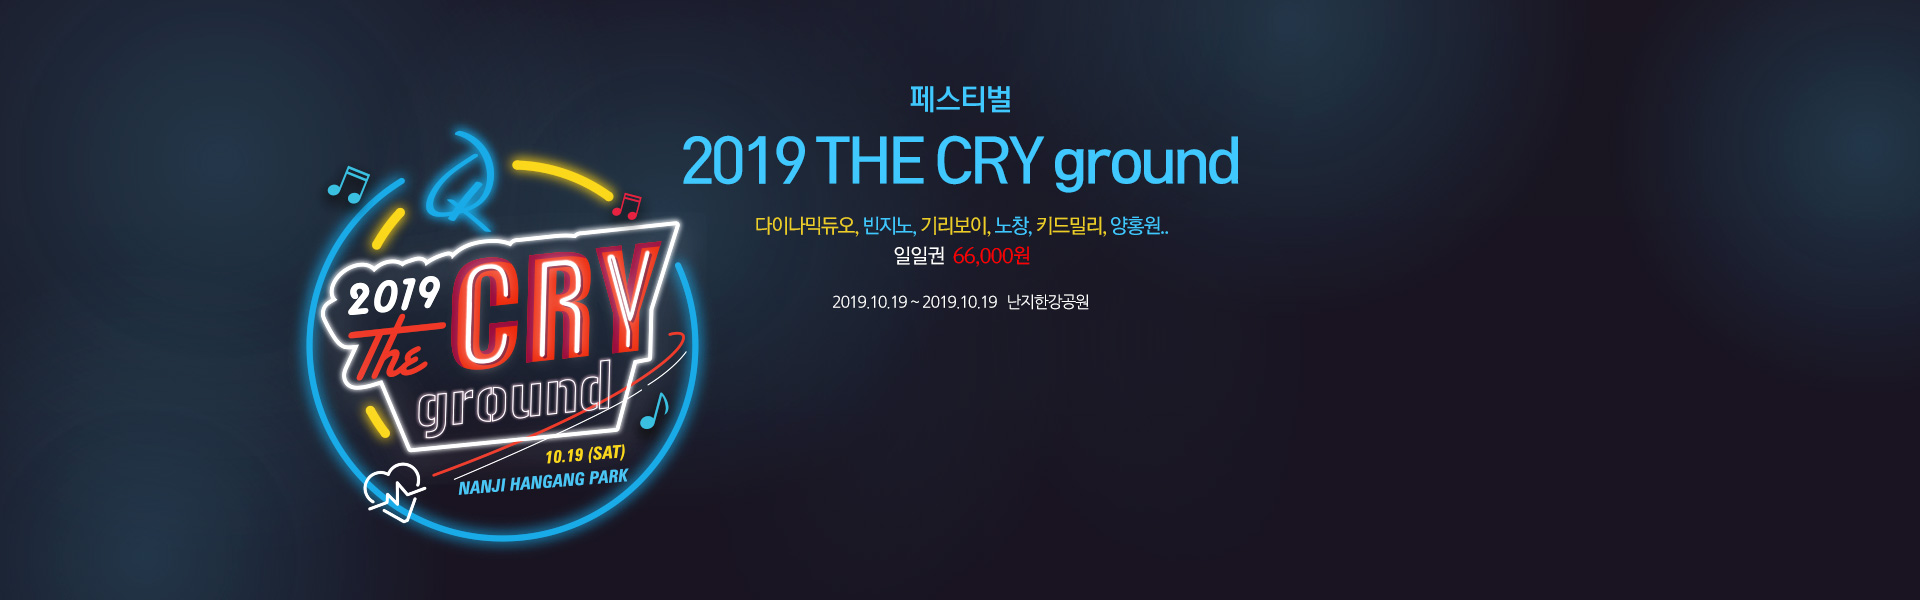 2019 THE CRY ground